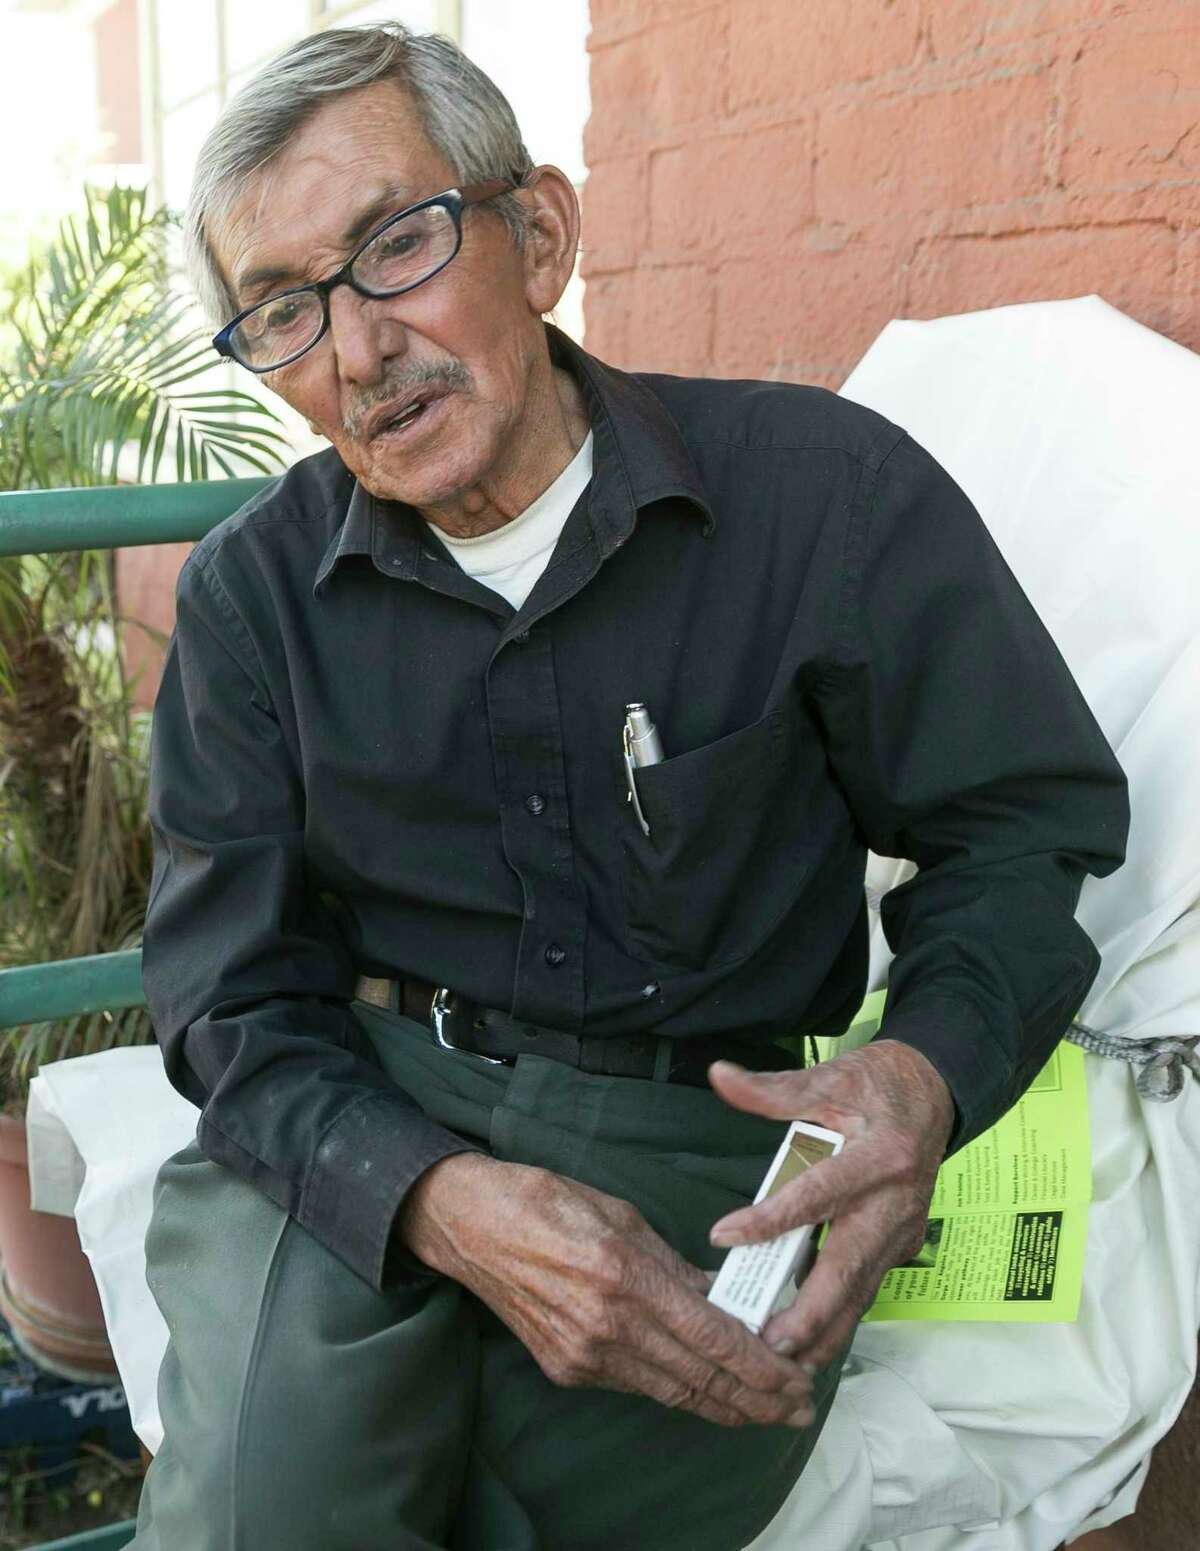 """Resident Juan Manuel Cabrera, 77, who has been smoking for 67 years, says no federal edict is going to stop him from lighting up in his own house at the William Mead Homes in Los Angeles Thursday. """"When I'm in my house I don't bother nobody and nobody bothers me,"""" Cabrera said as he relaxed on his porch with his chubby brown Chihuahua, Dunko, an ashtray within arm's reach and a pack of Marlboro Lights in his pocket."""